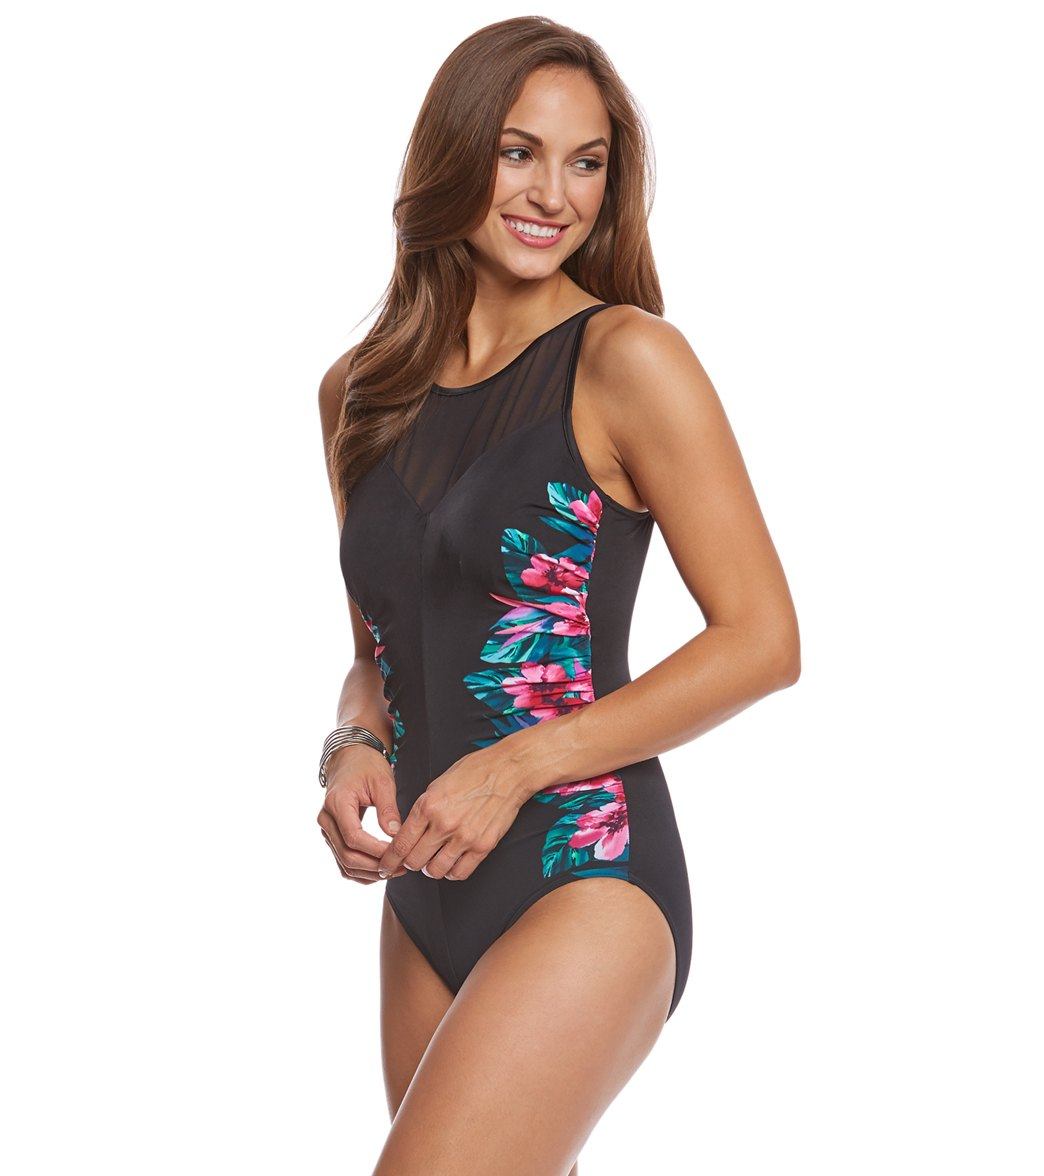 119a3096f80 Miraclesuit Tahitian Temptress Fascination Underwire One Piece Swimsuit